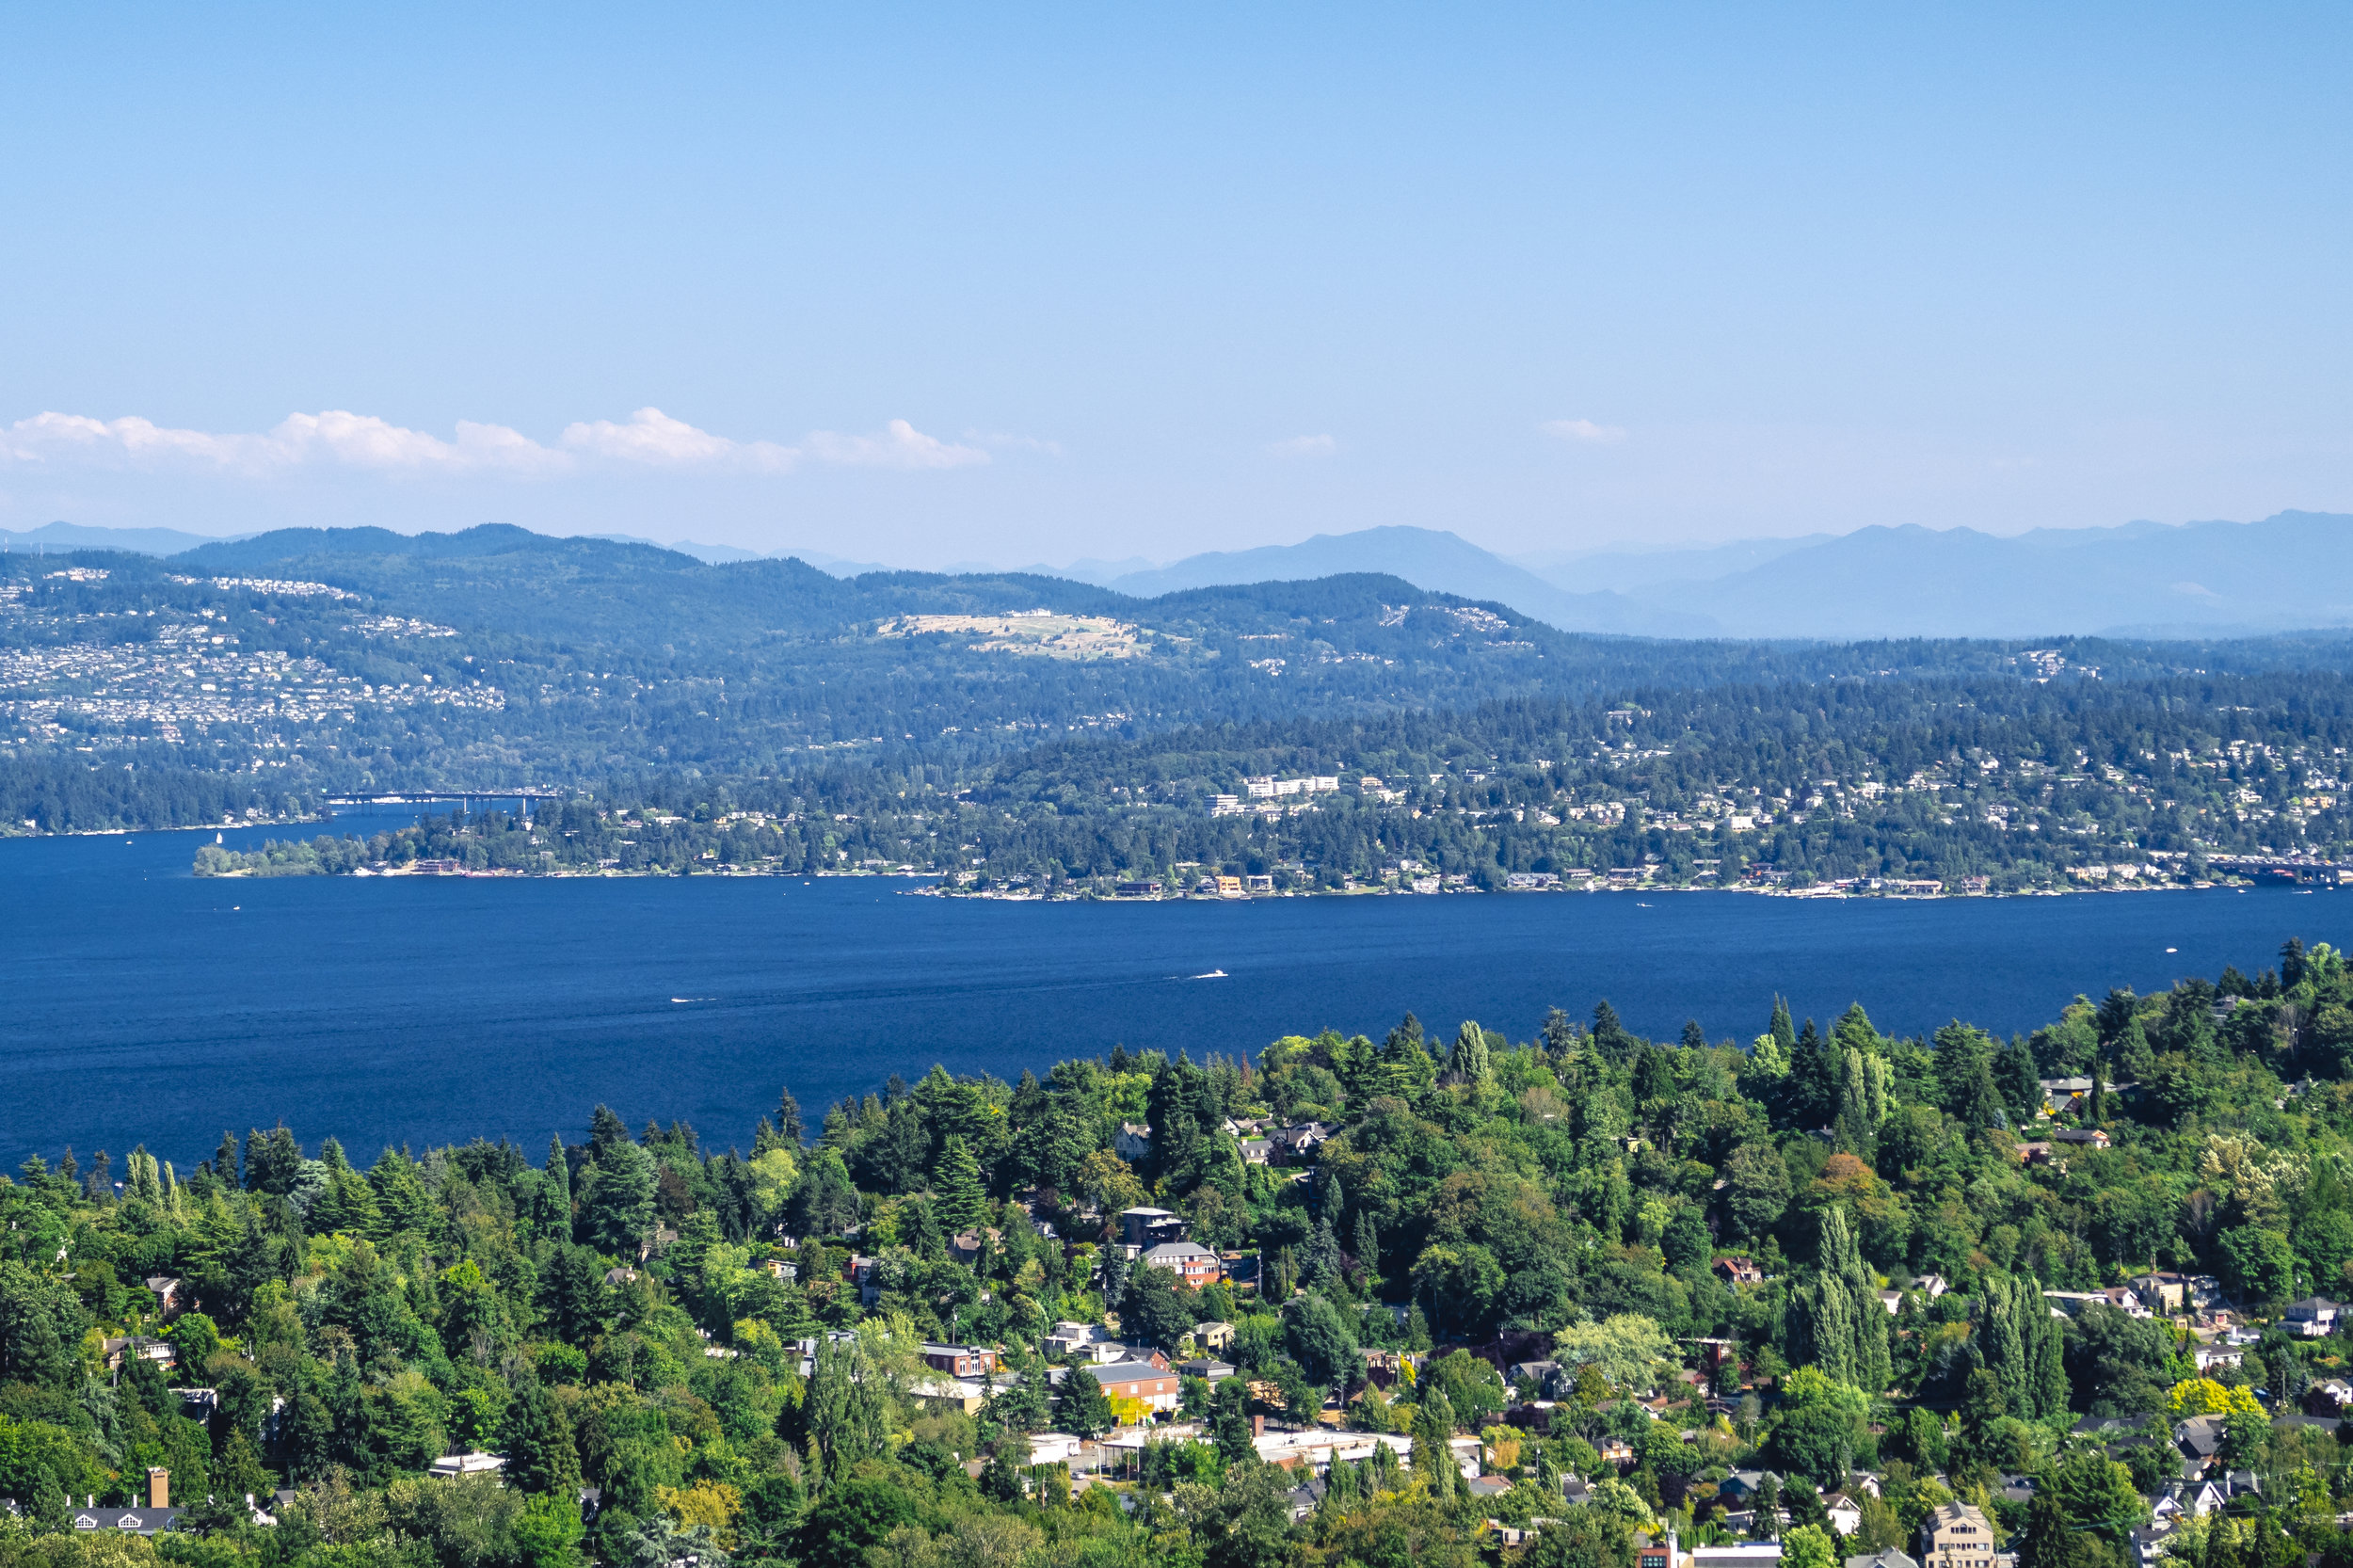 Evergreen_State_Lake_Washington_Summer_Aerial.jpg